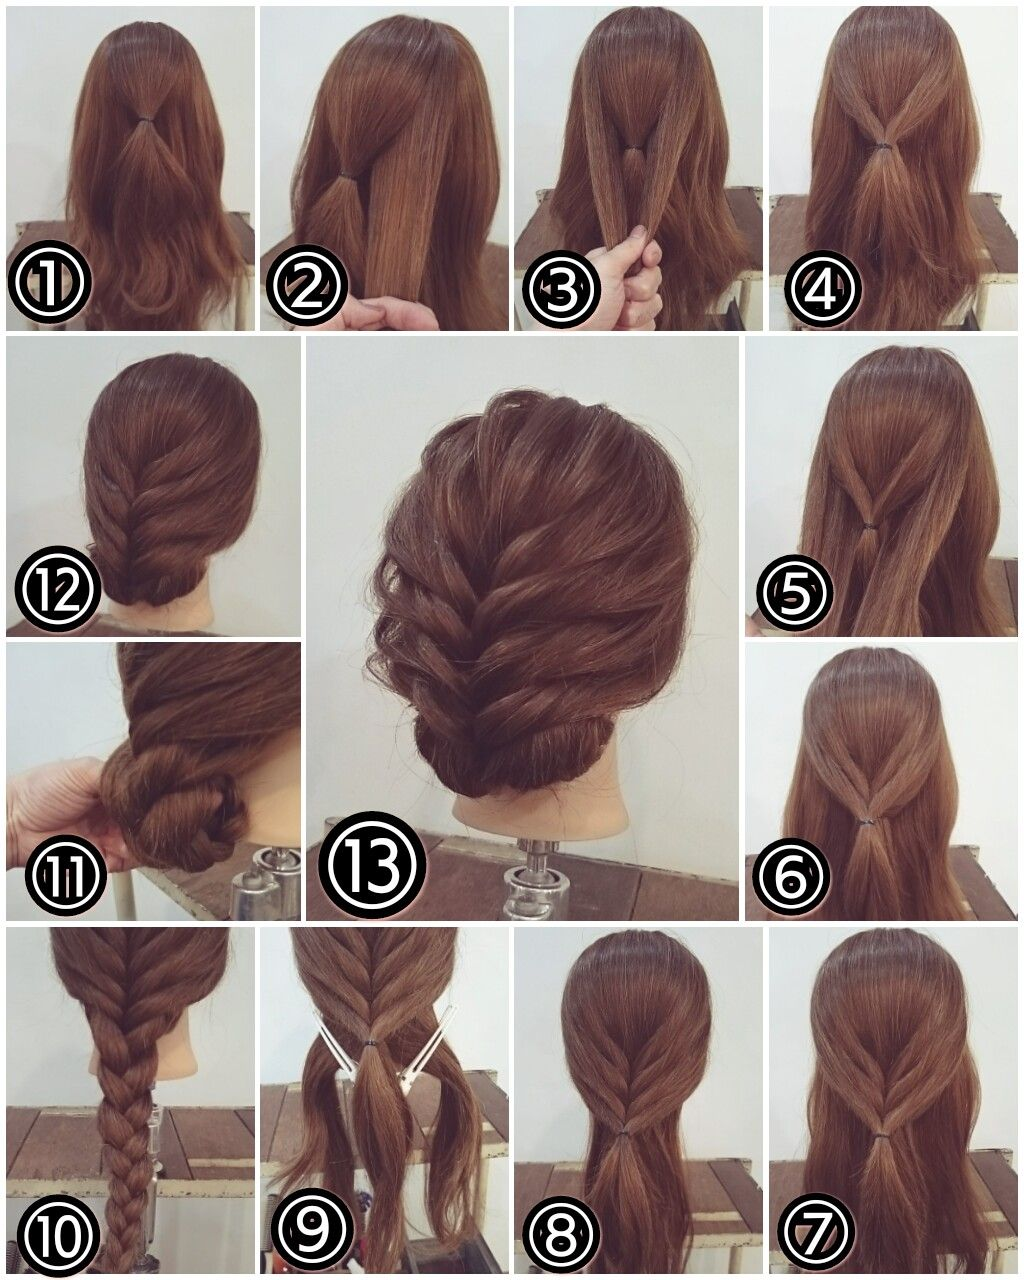 69269a8ee632f60e73f5308550d6193f Jpg 1024 1280 Party Hairstyles For Long Hair Long Hair Styles Long Hair Tutorial